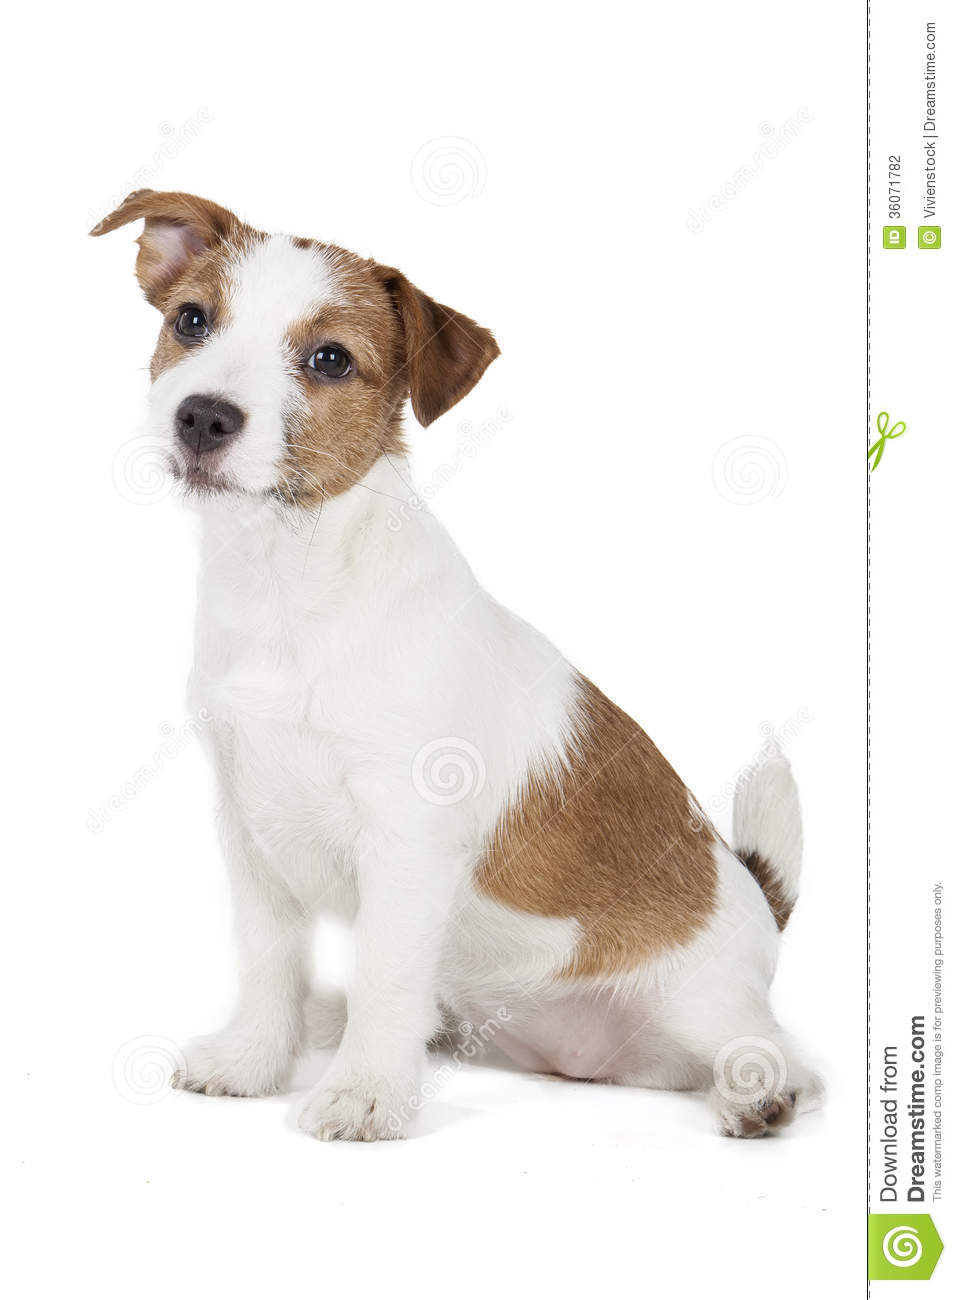 Jack Russell Terrier Puppy Stock Photography - Image: 36071782